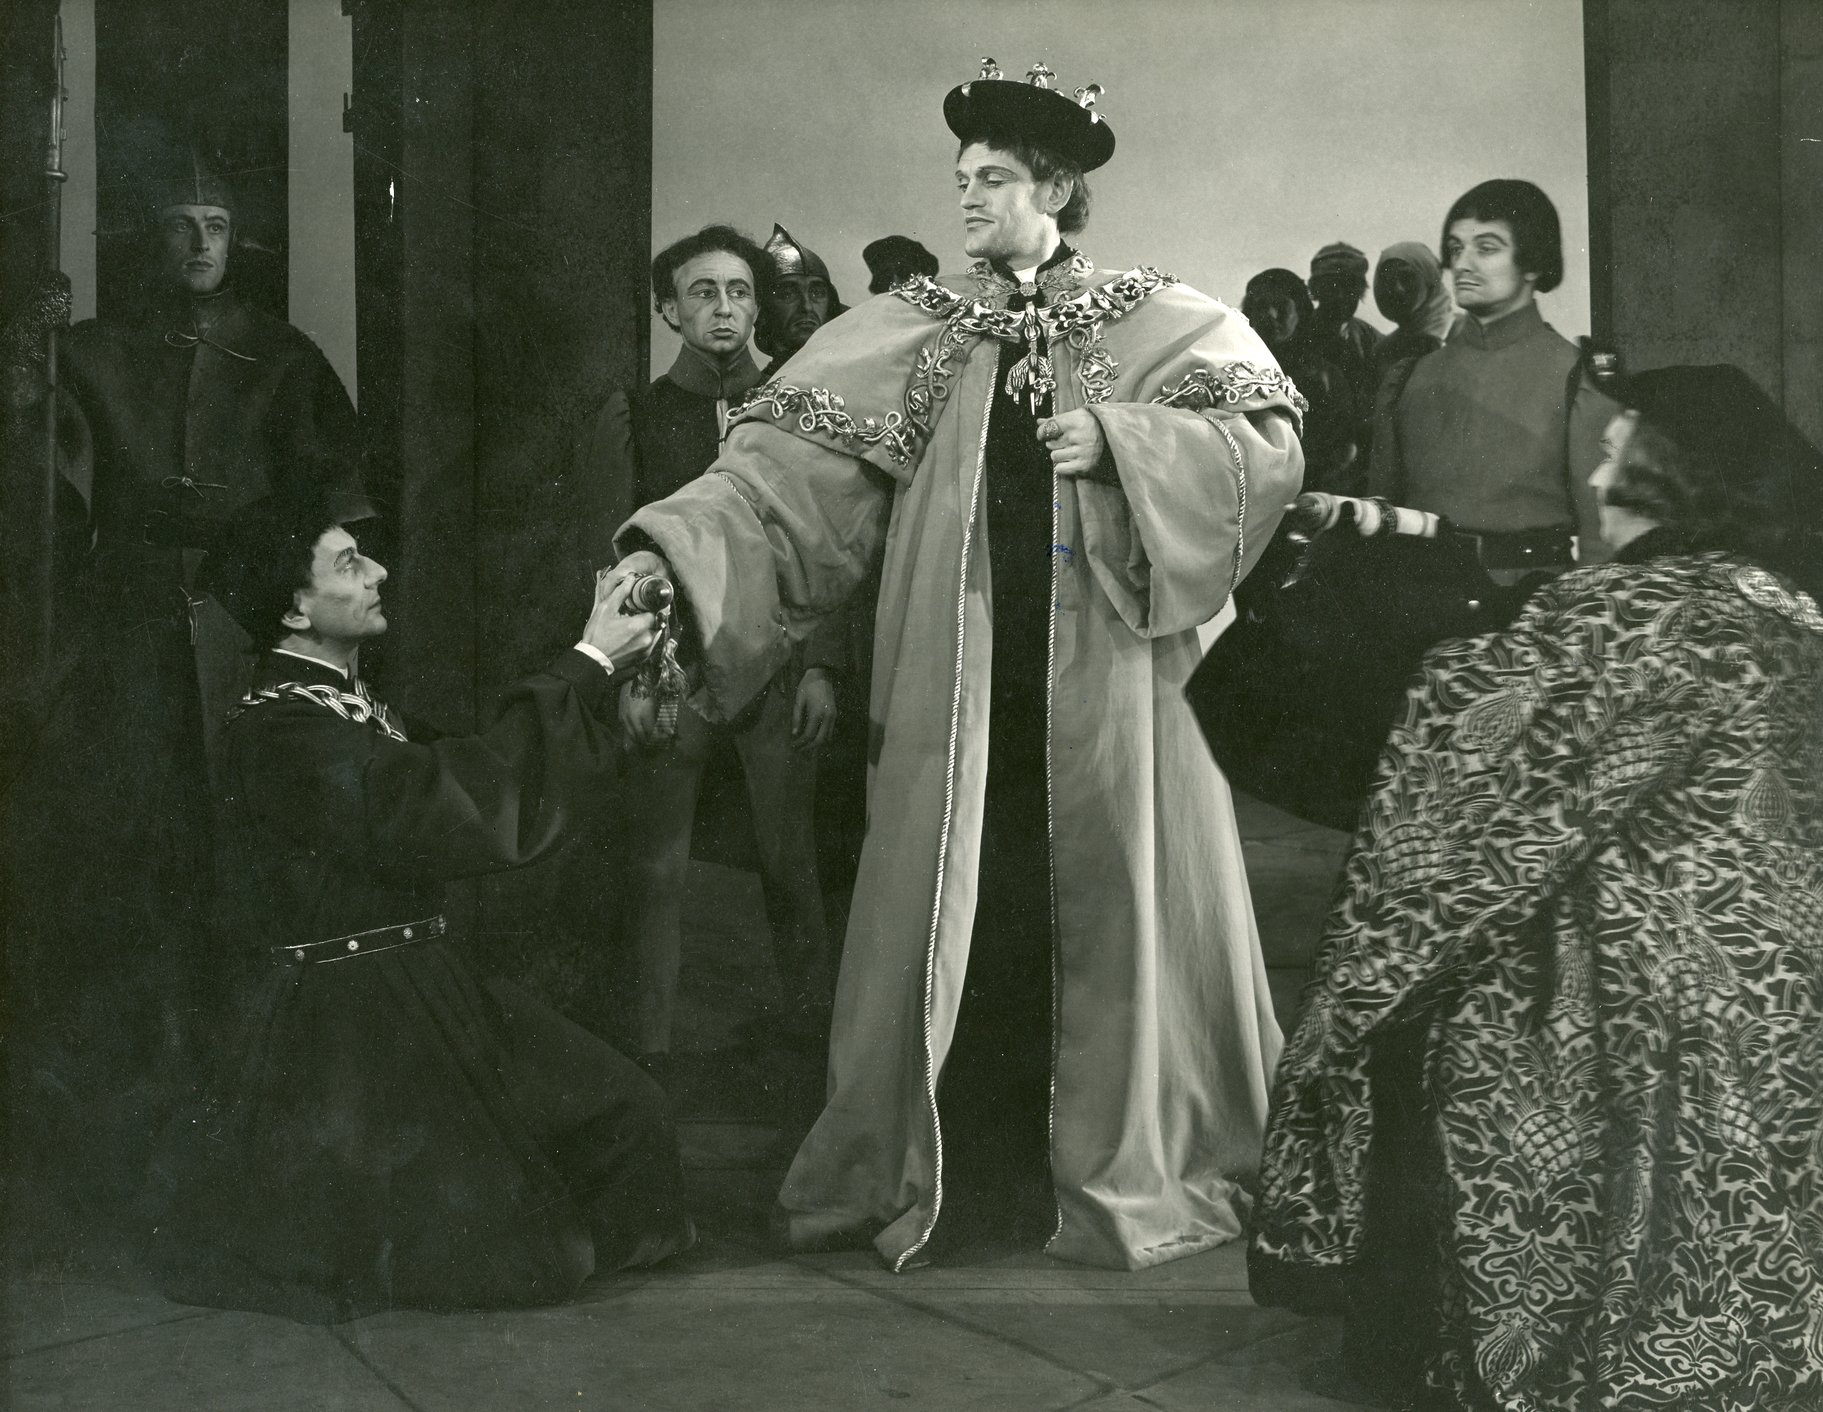 A man in long robes and gold chains hold court.